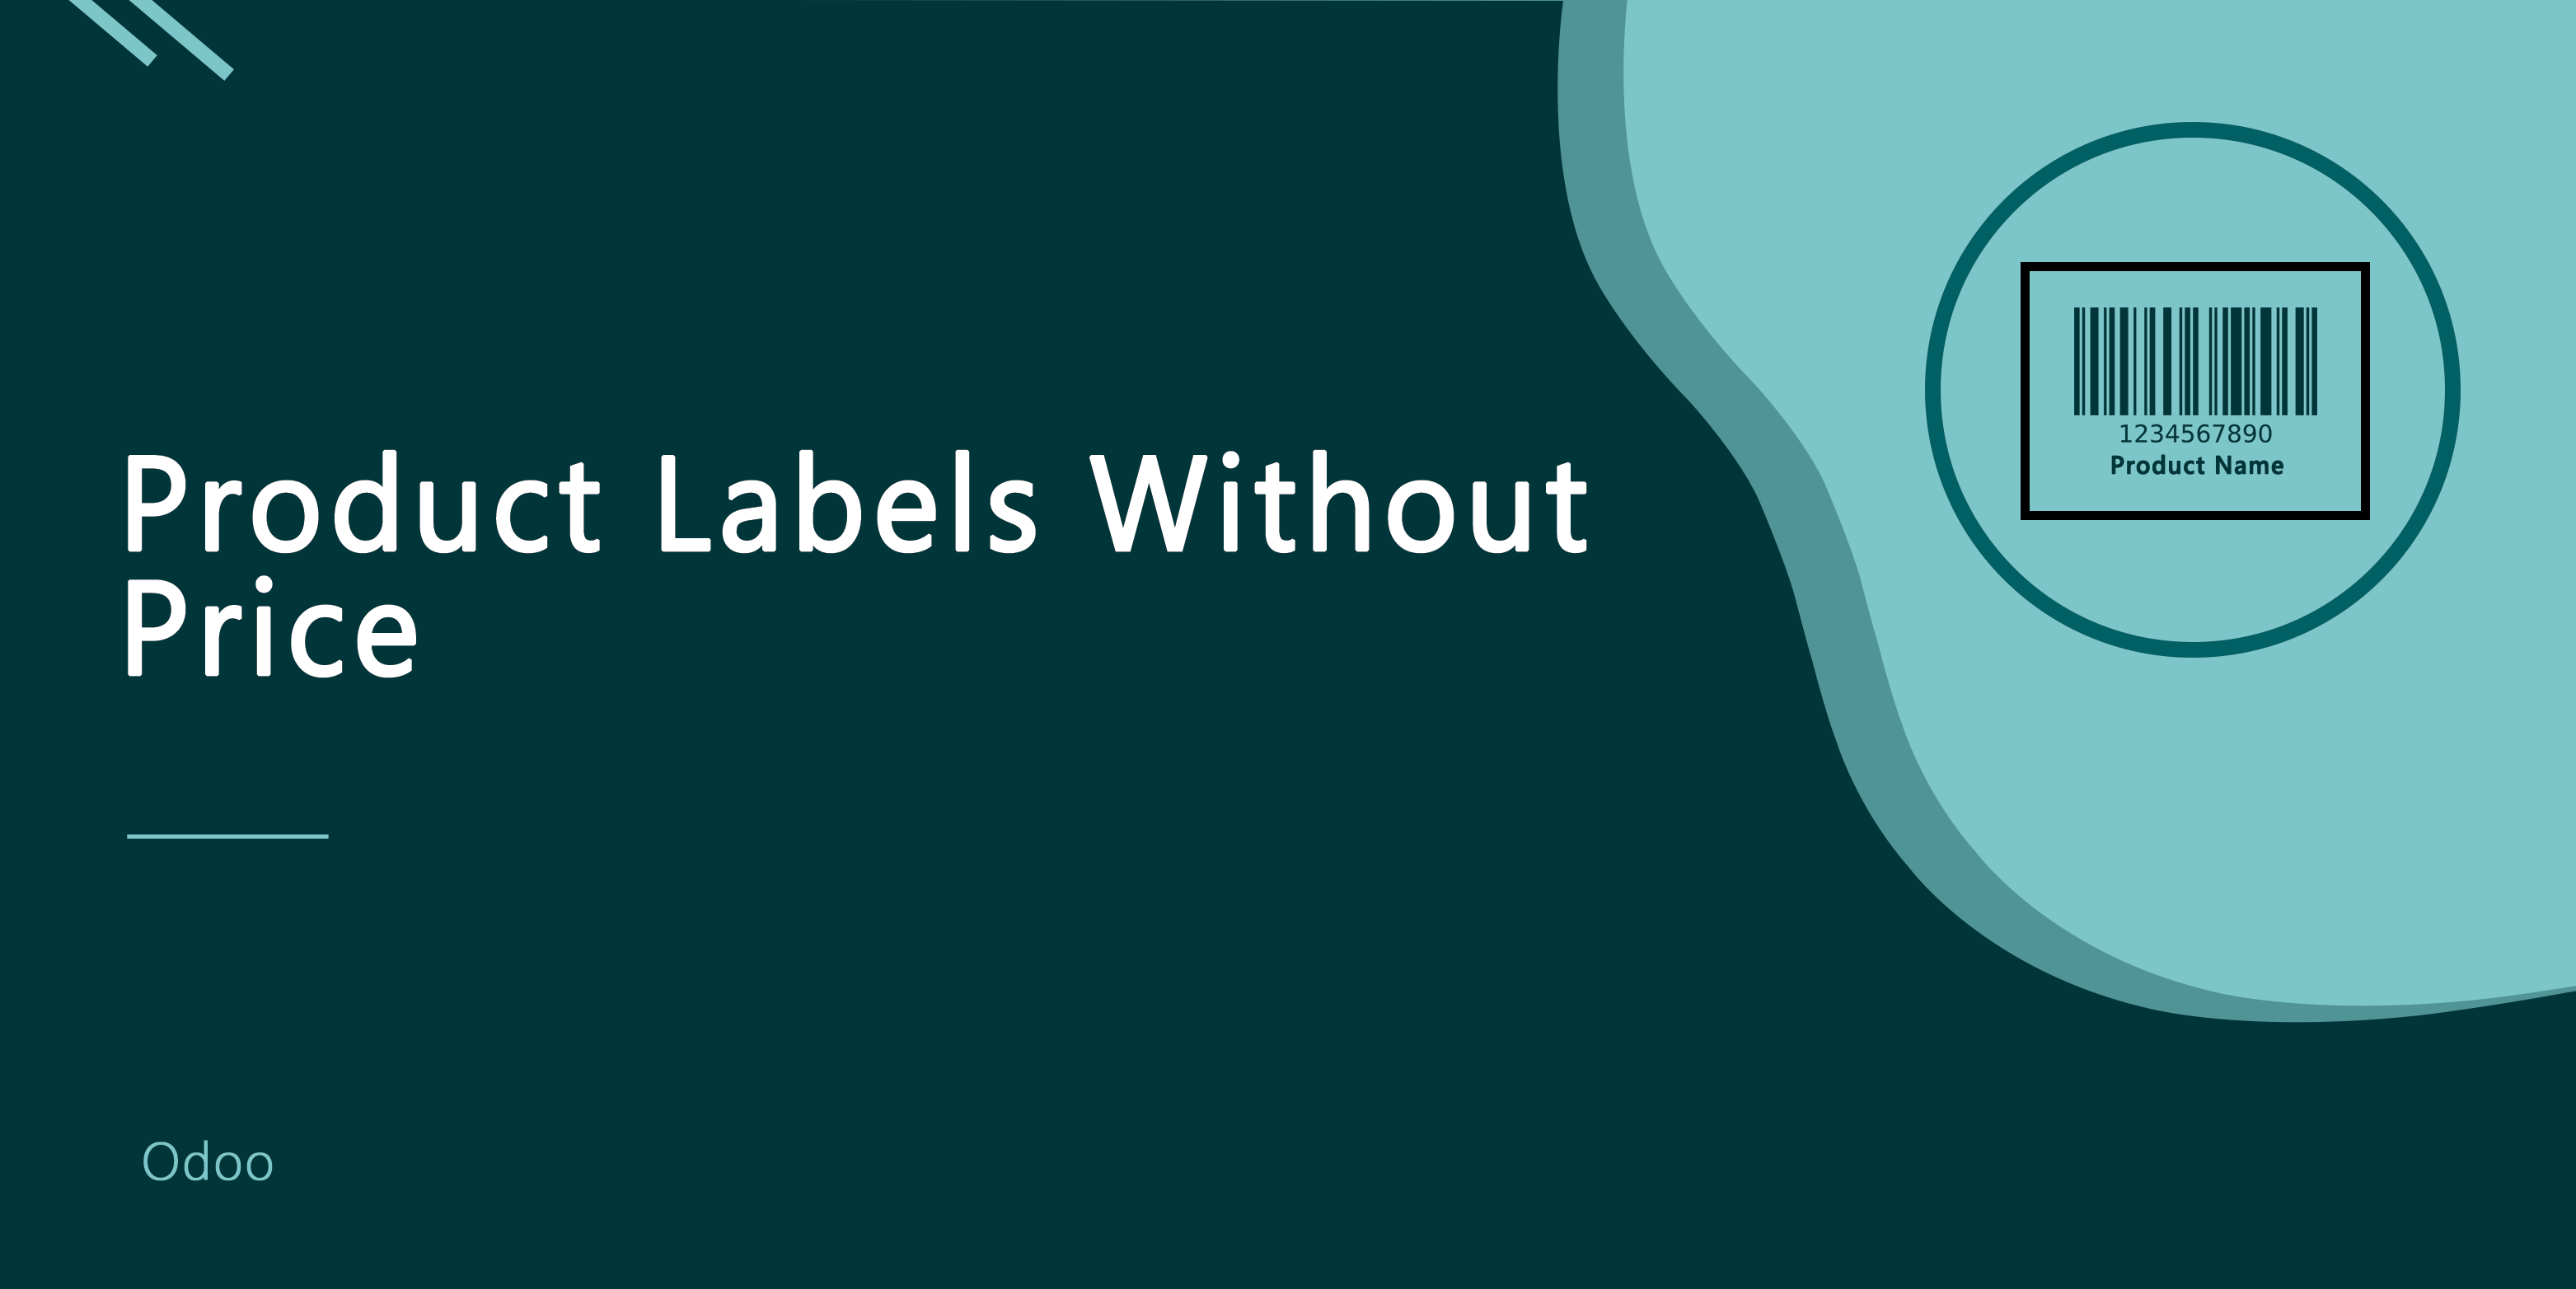 Product Labels Without Price